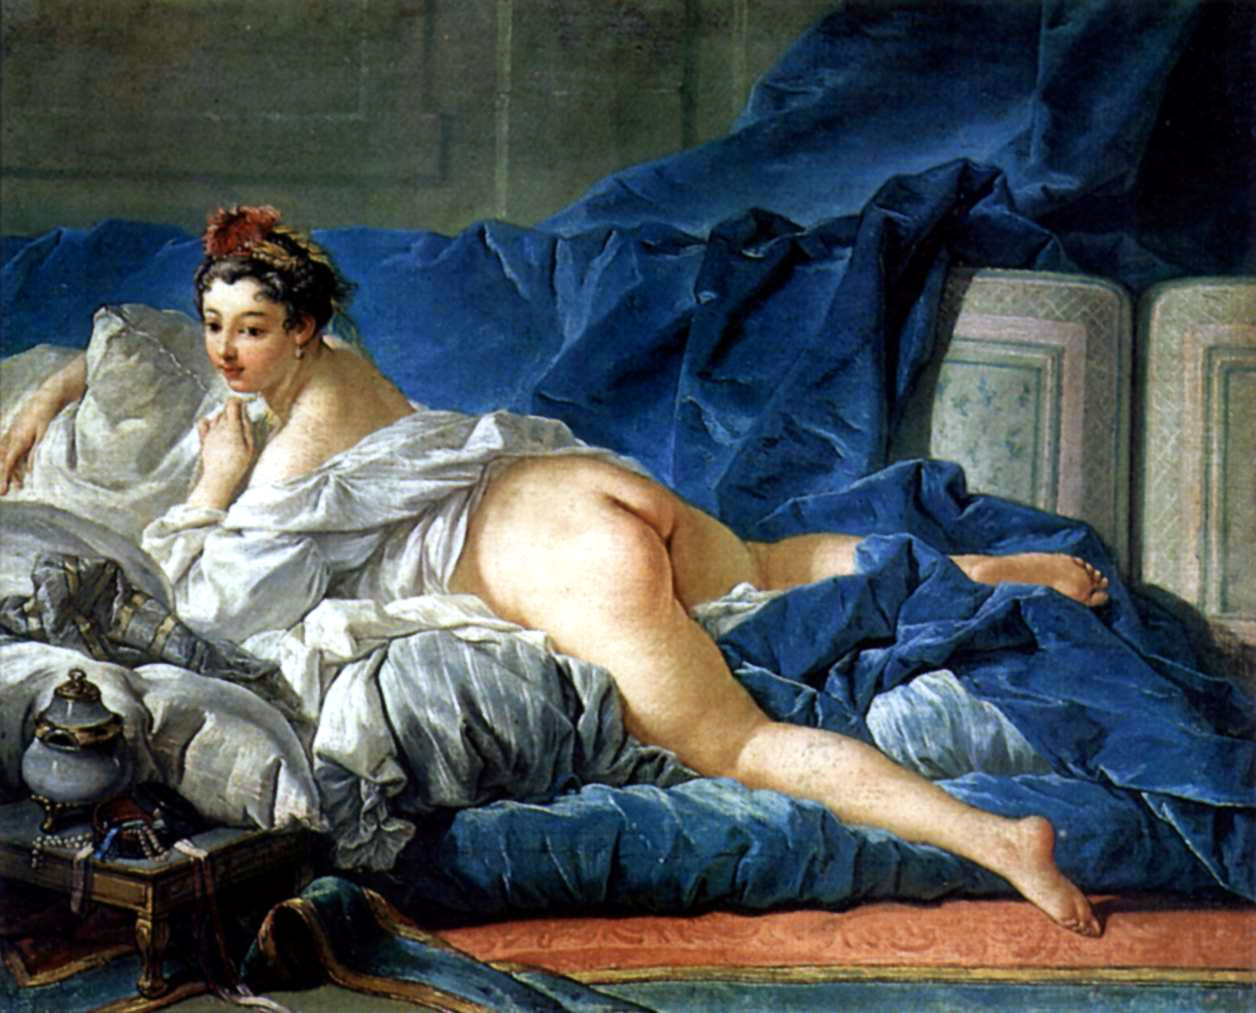 http://upload.wikimedia.org/wikipedia/commons/3/3c/Fran%C3%A7ois_Boucher_015.jpg